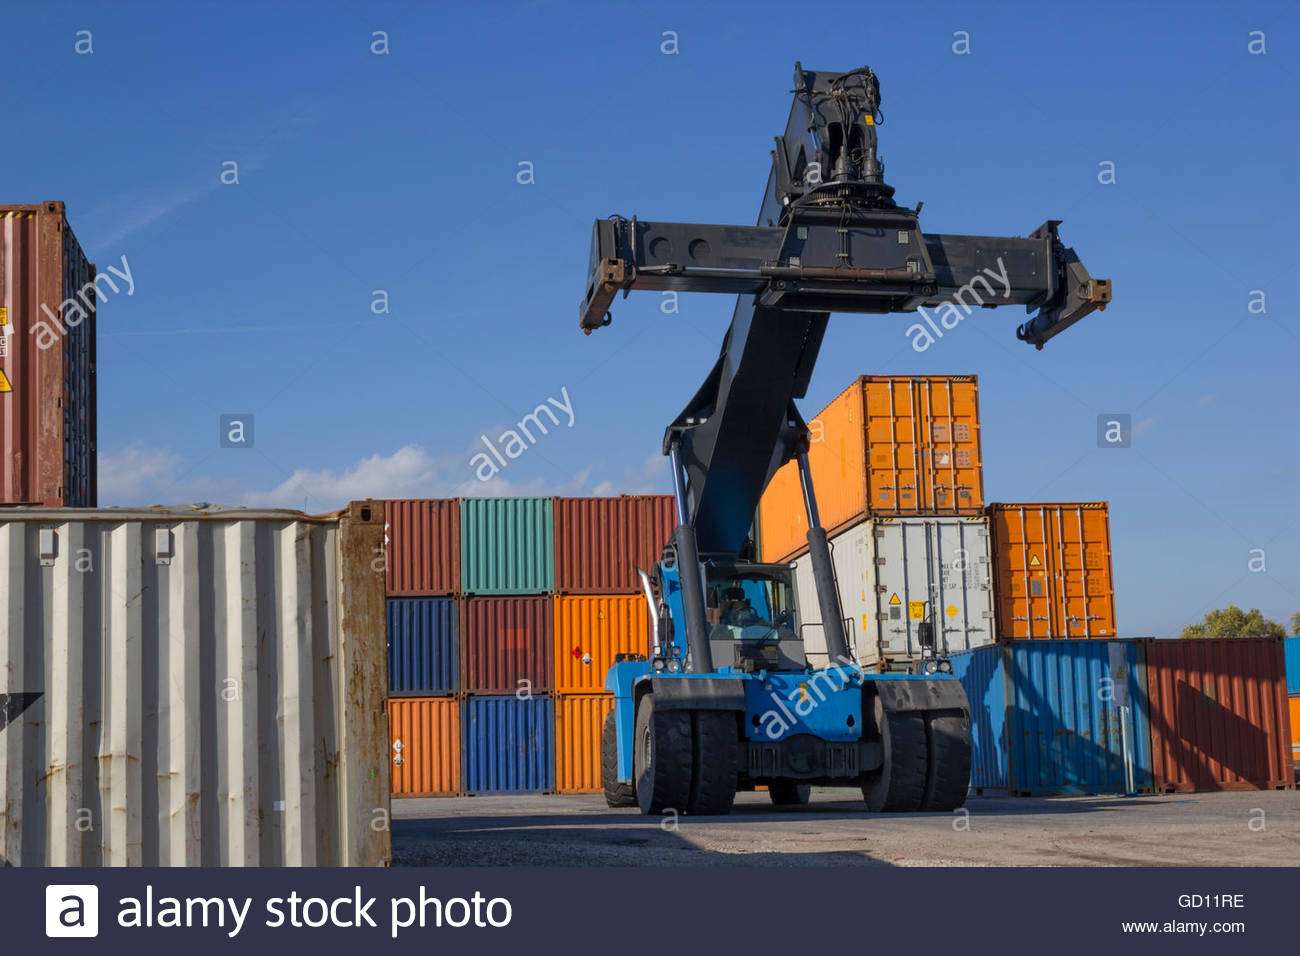 container lifter - Stock Image